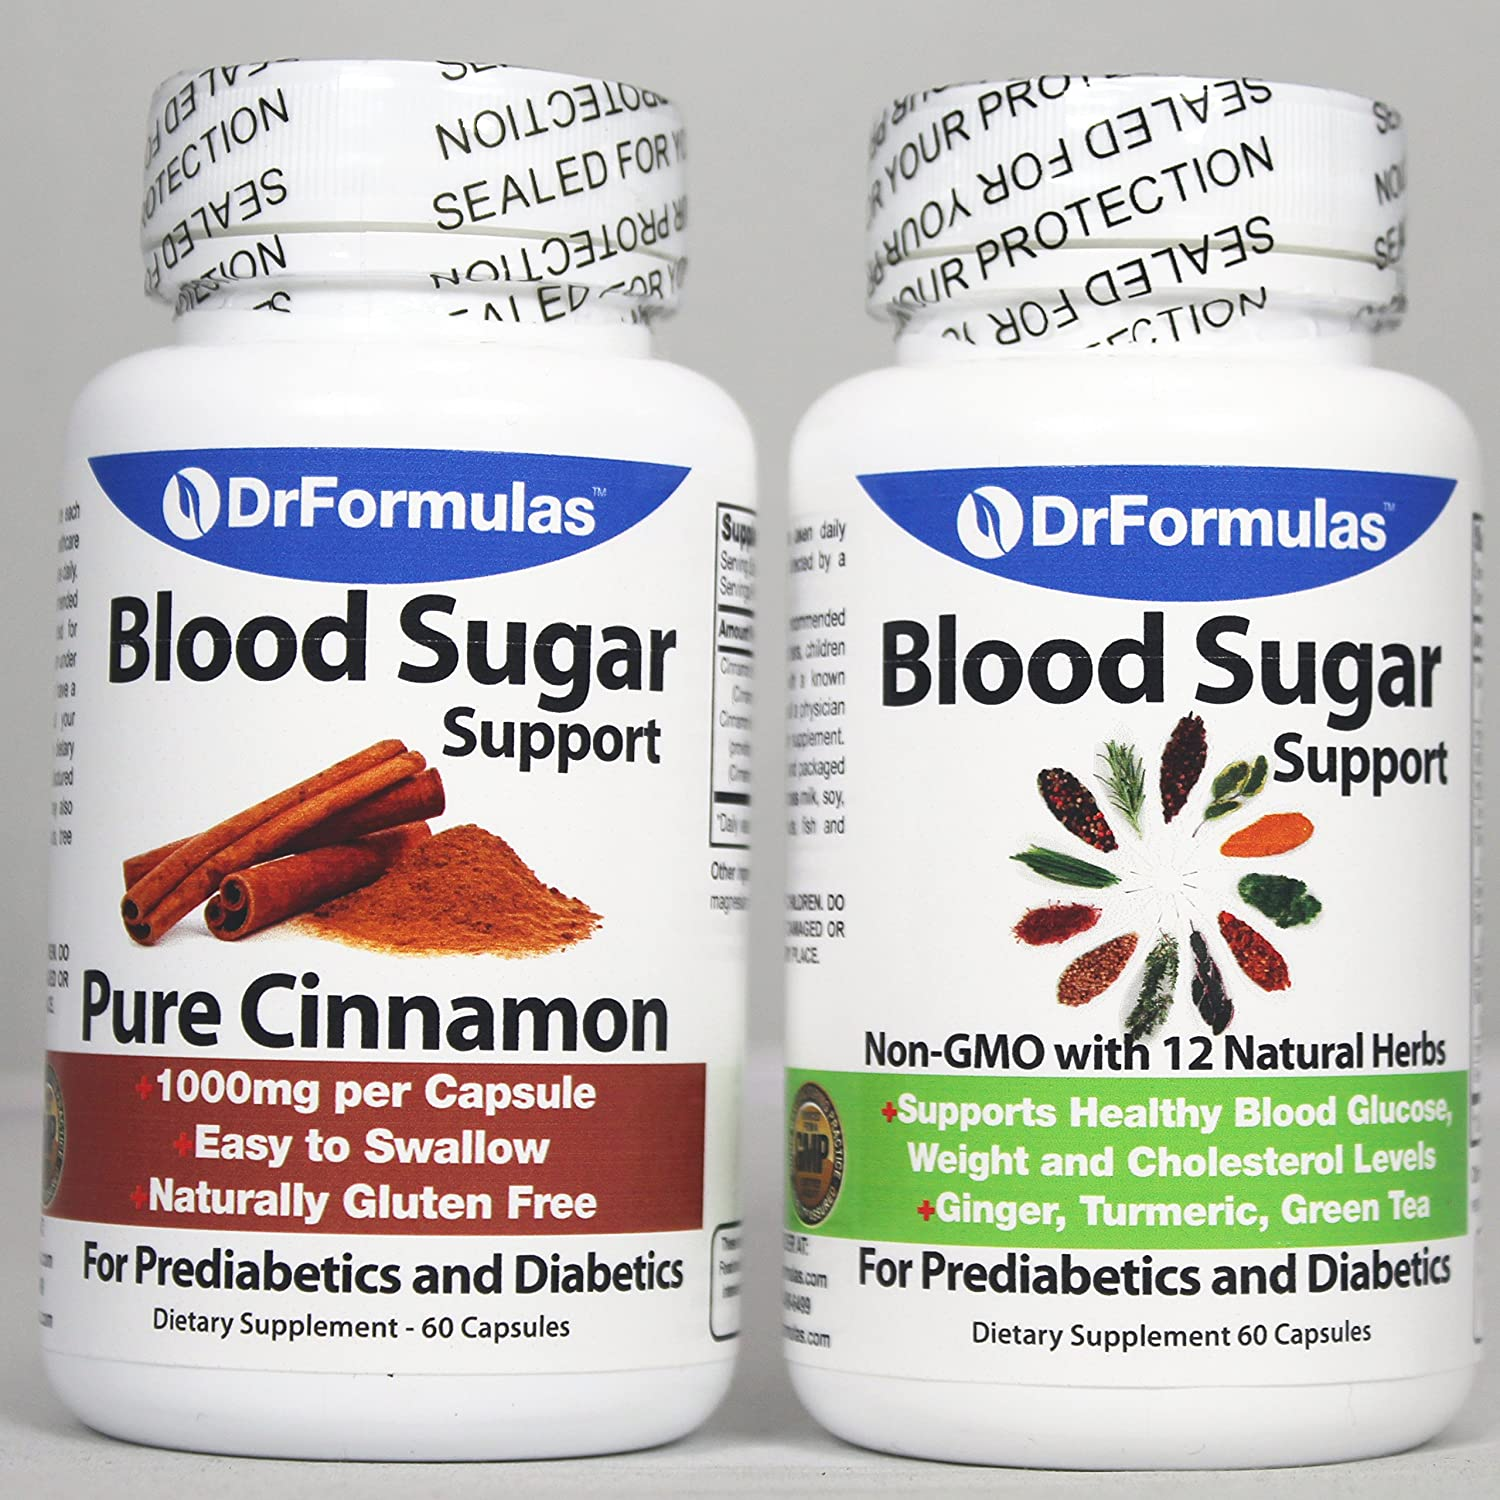 DrFormulas Blood Sugar Support Diabetes Health Pack Supplements for Kids Adults Glucose, Insulin Cholesterol Control with Cinnamon Cinsulin, Turmeric, Vitamins Vital Nutrients